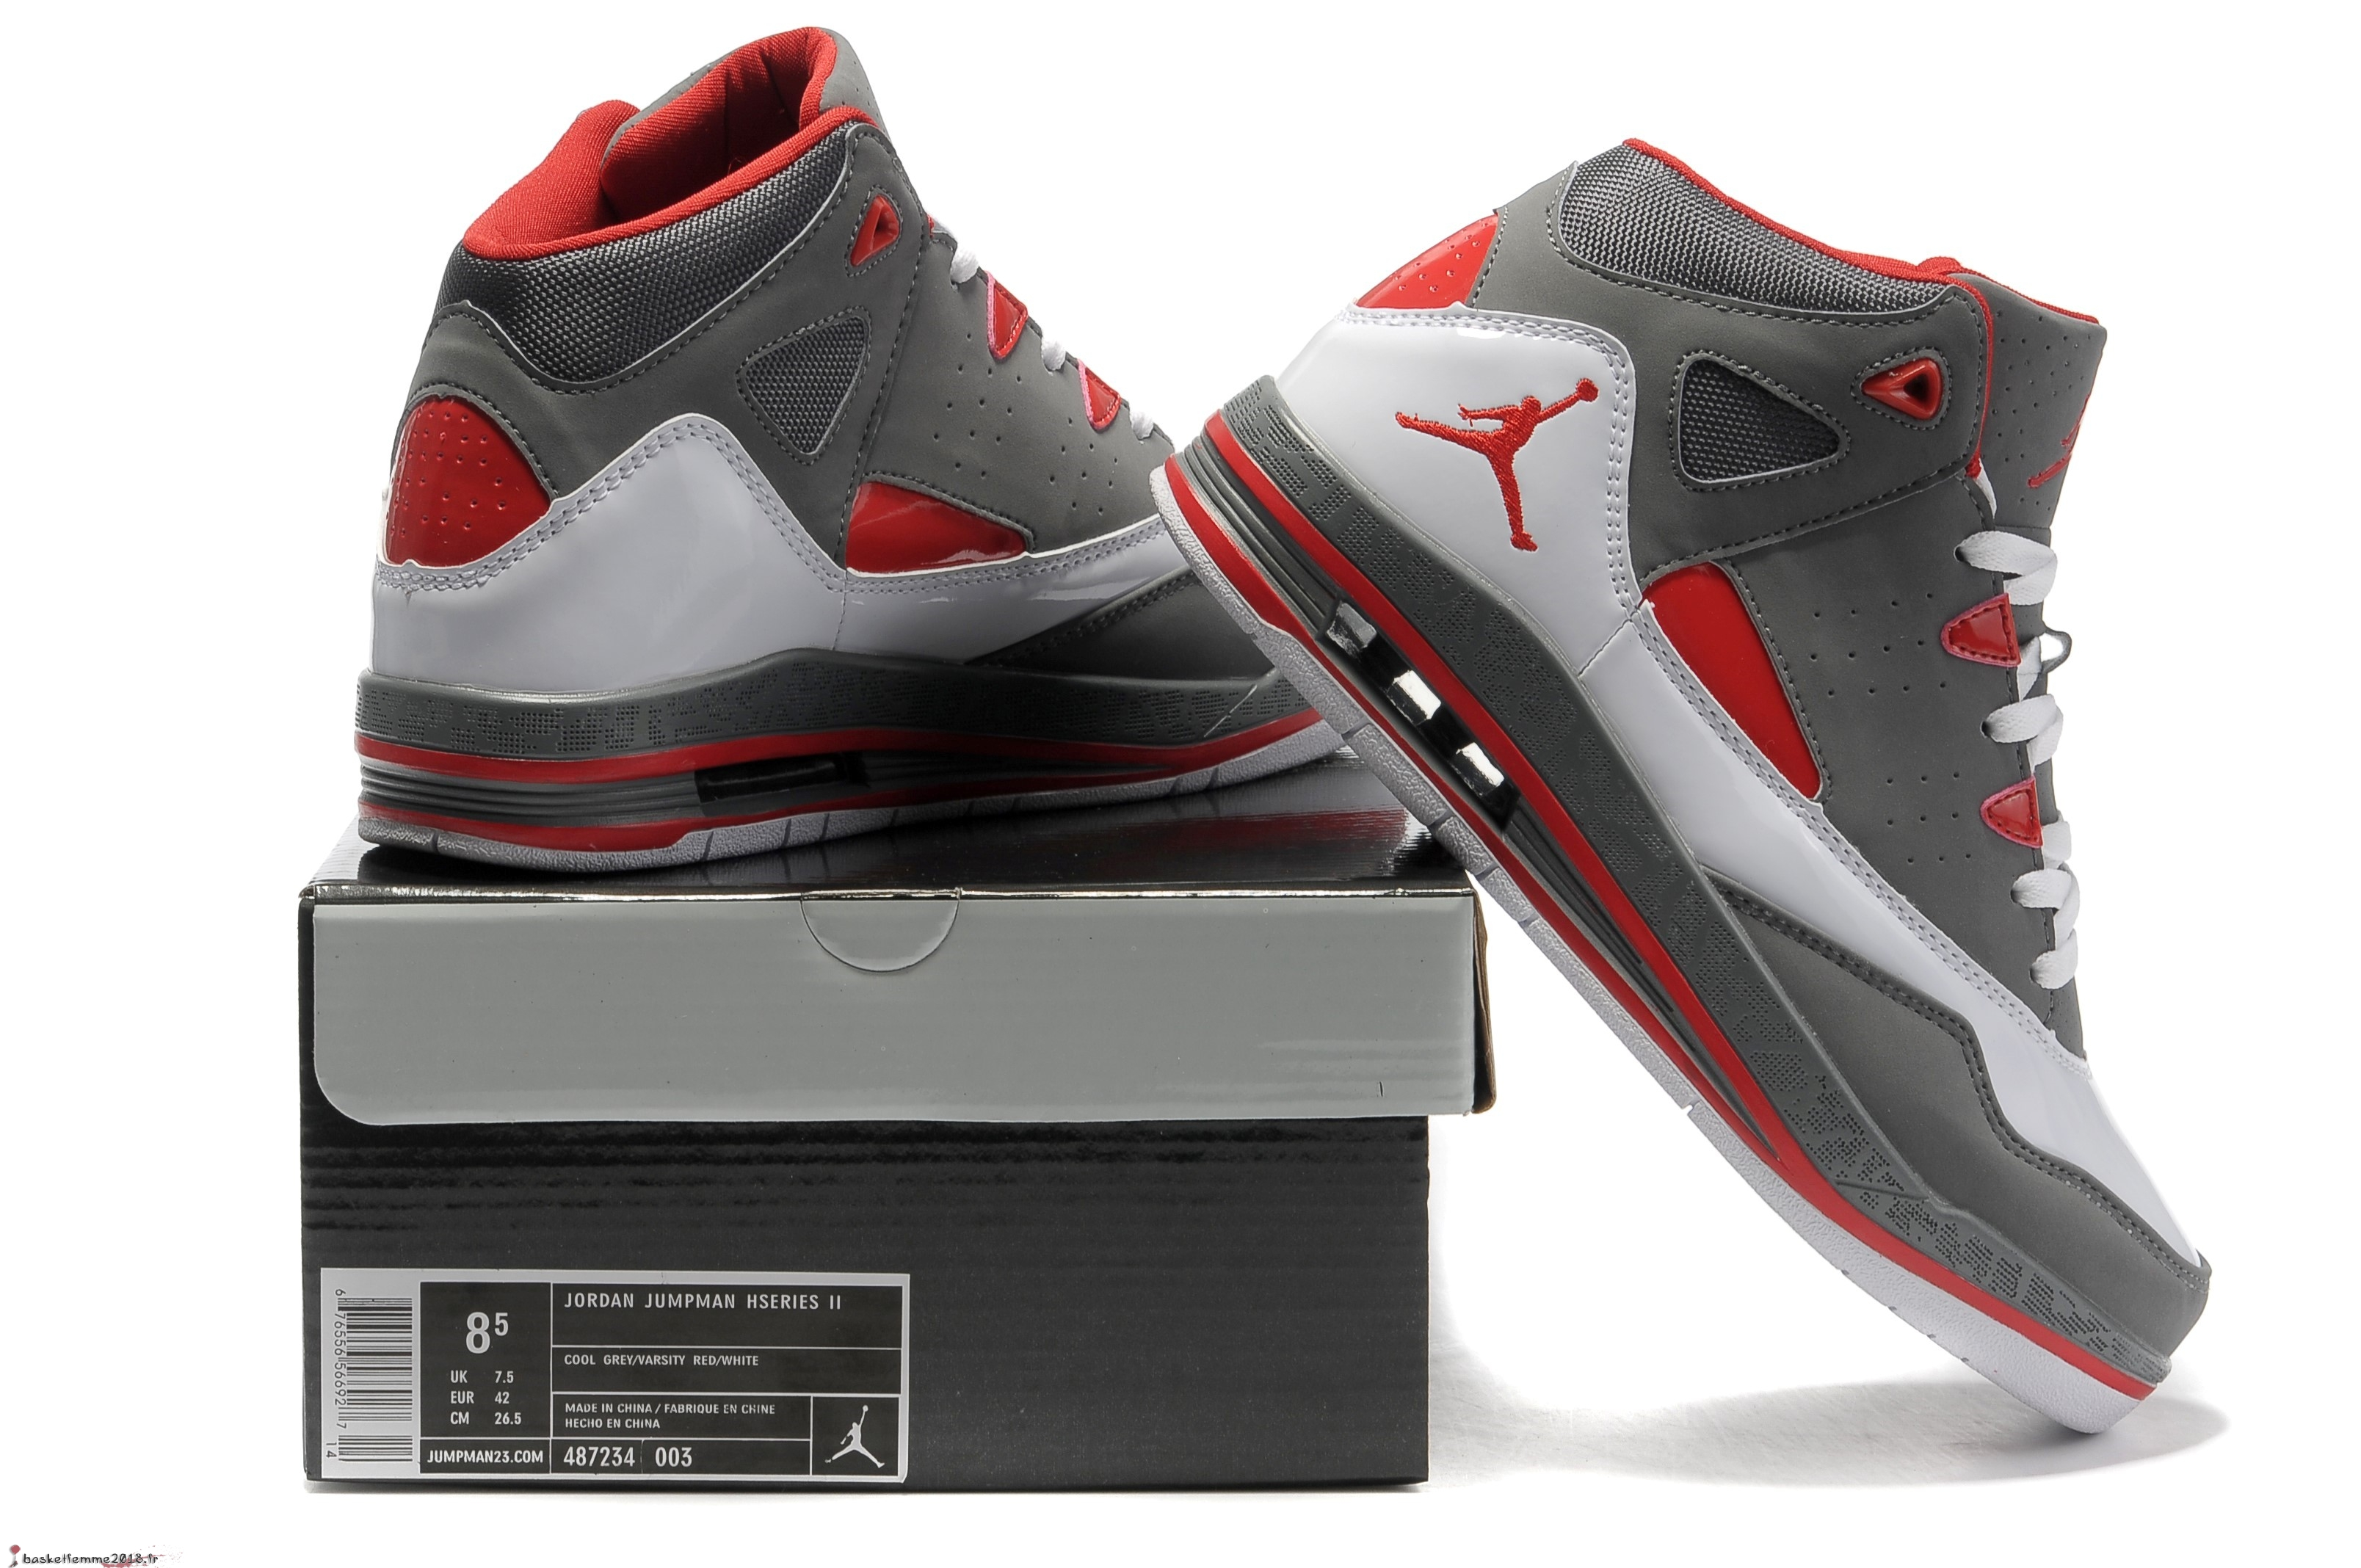 new arrival 362fc efdb9 ... discount code for air jordan jumpman team 2 gs homme gris rouge  chaussure de basket d1375